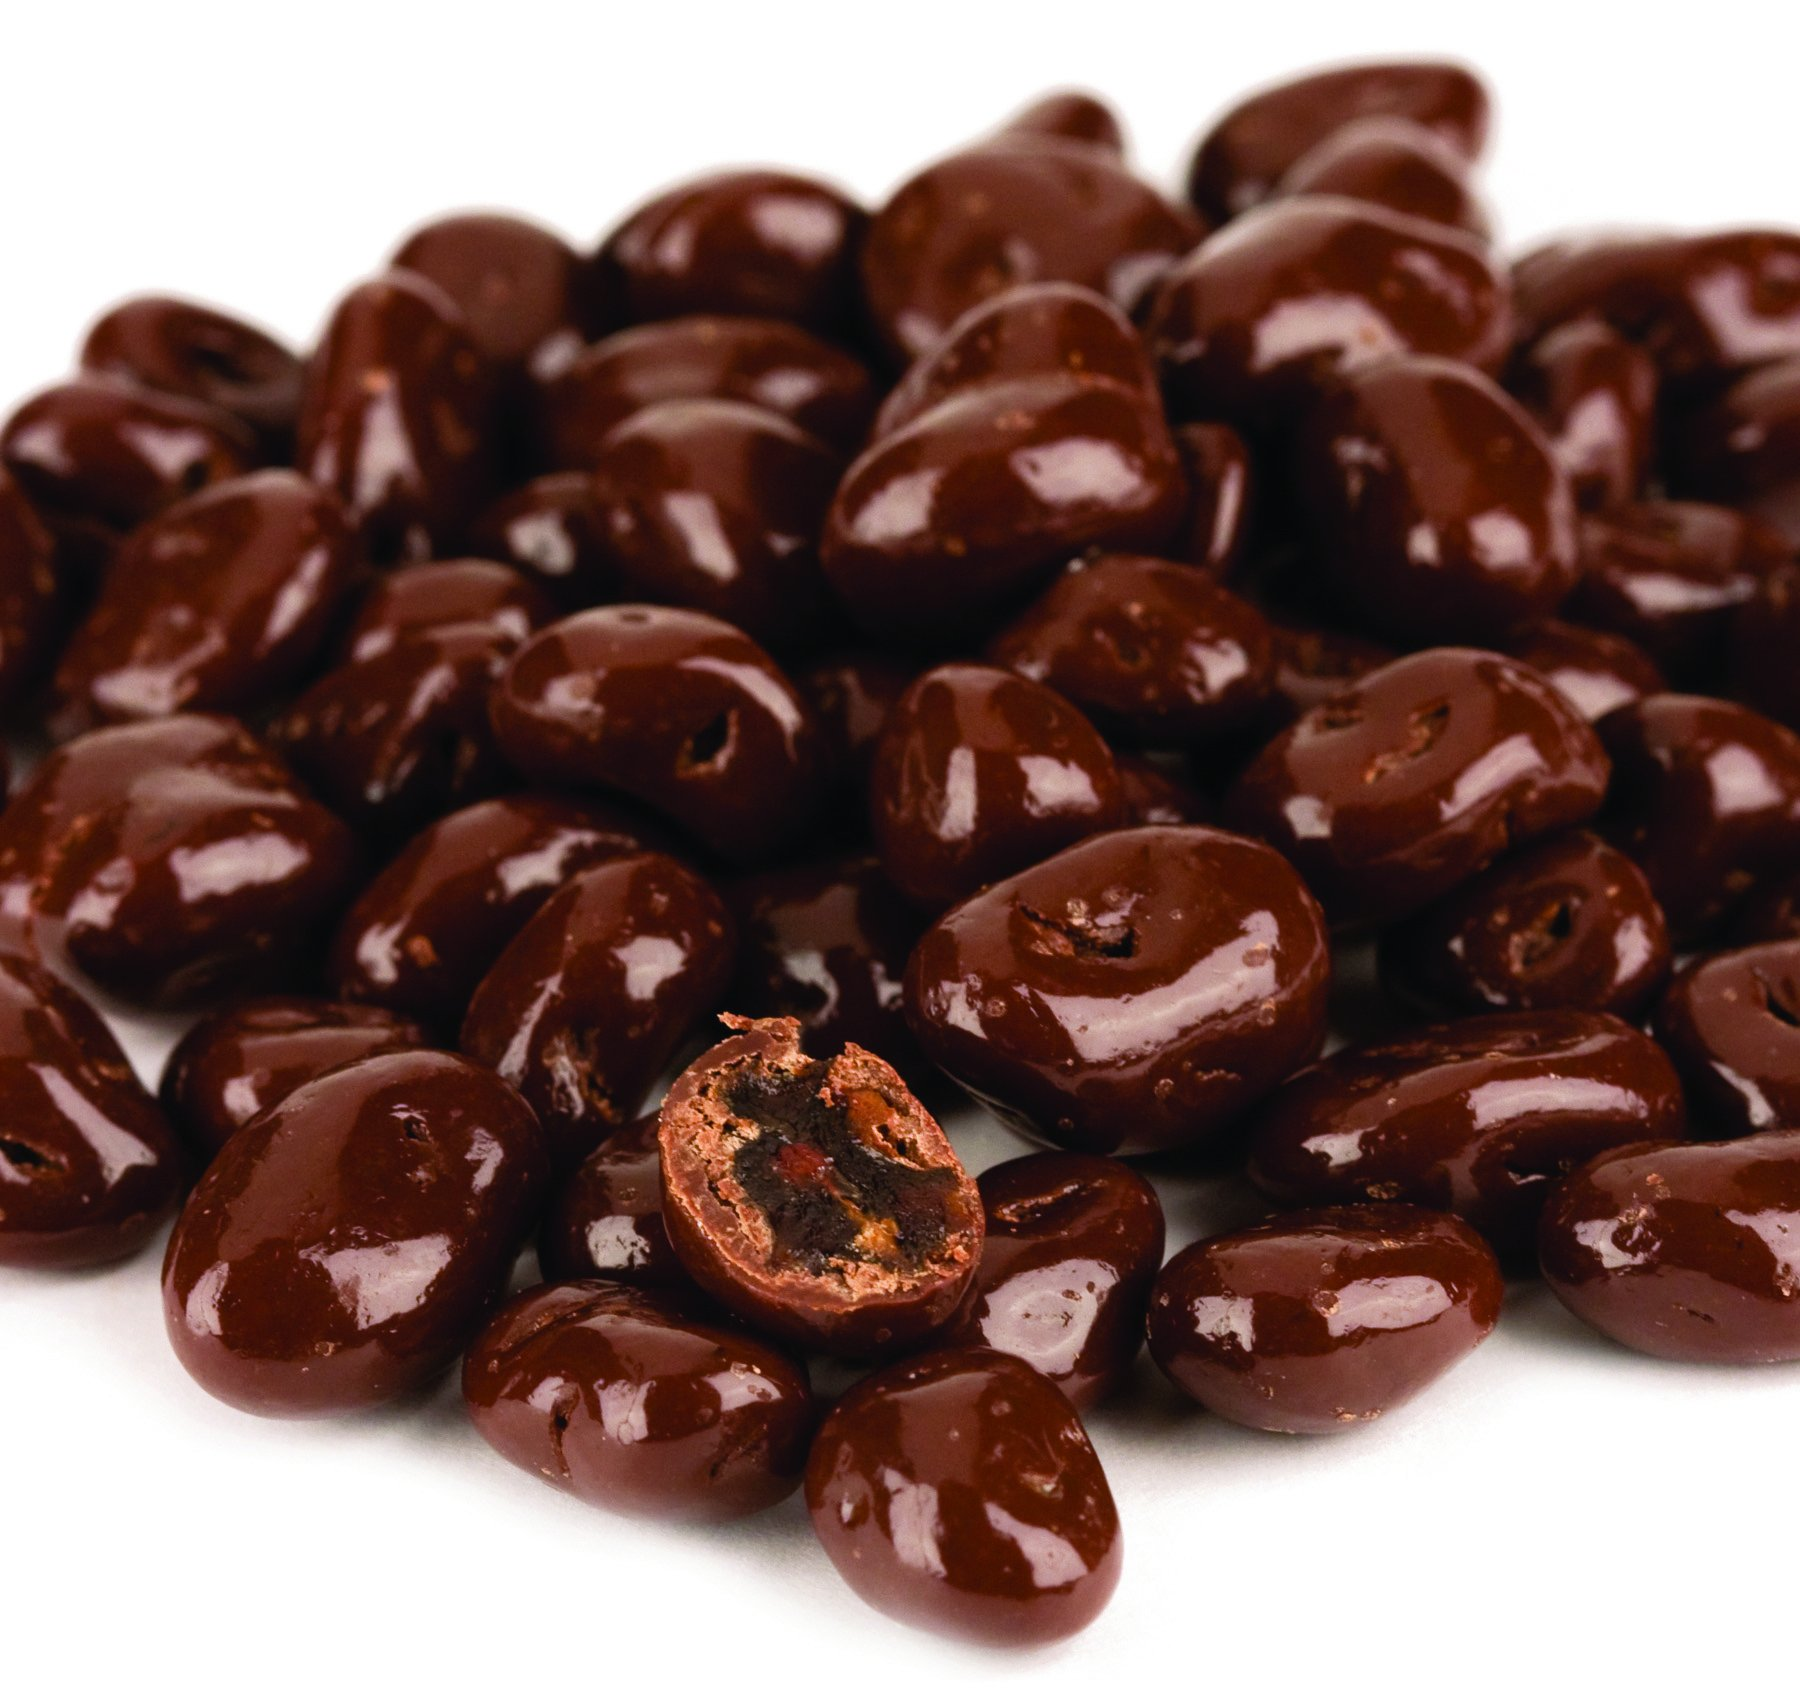 Dark Chocolate Covered Raisins, No Sugar Added, 12 Oz. Bag (Pack of 4) by Kauffman's Fruit Farm